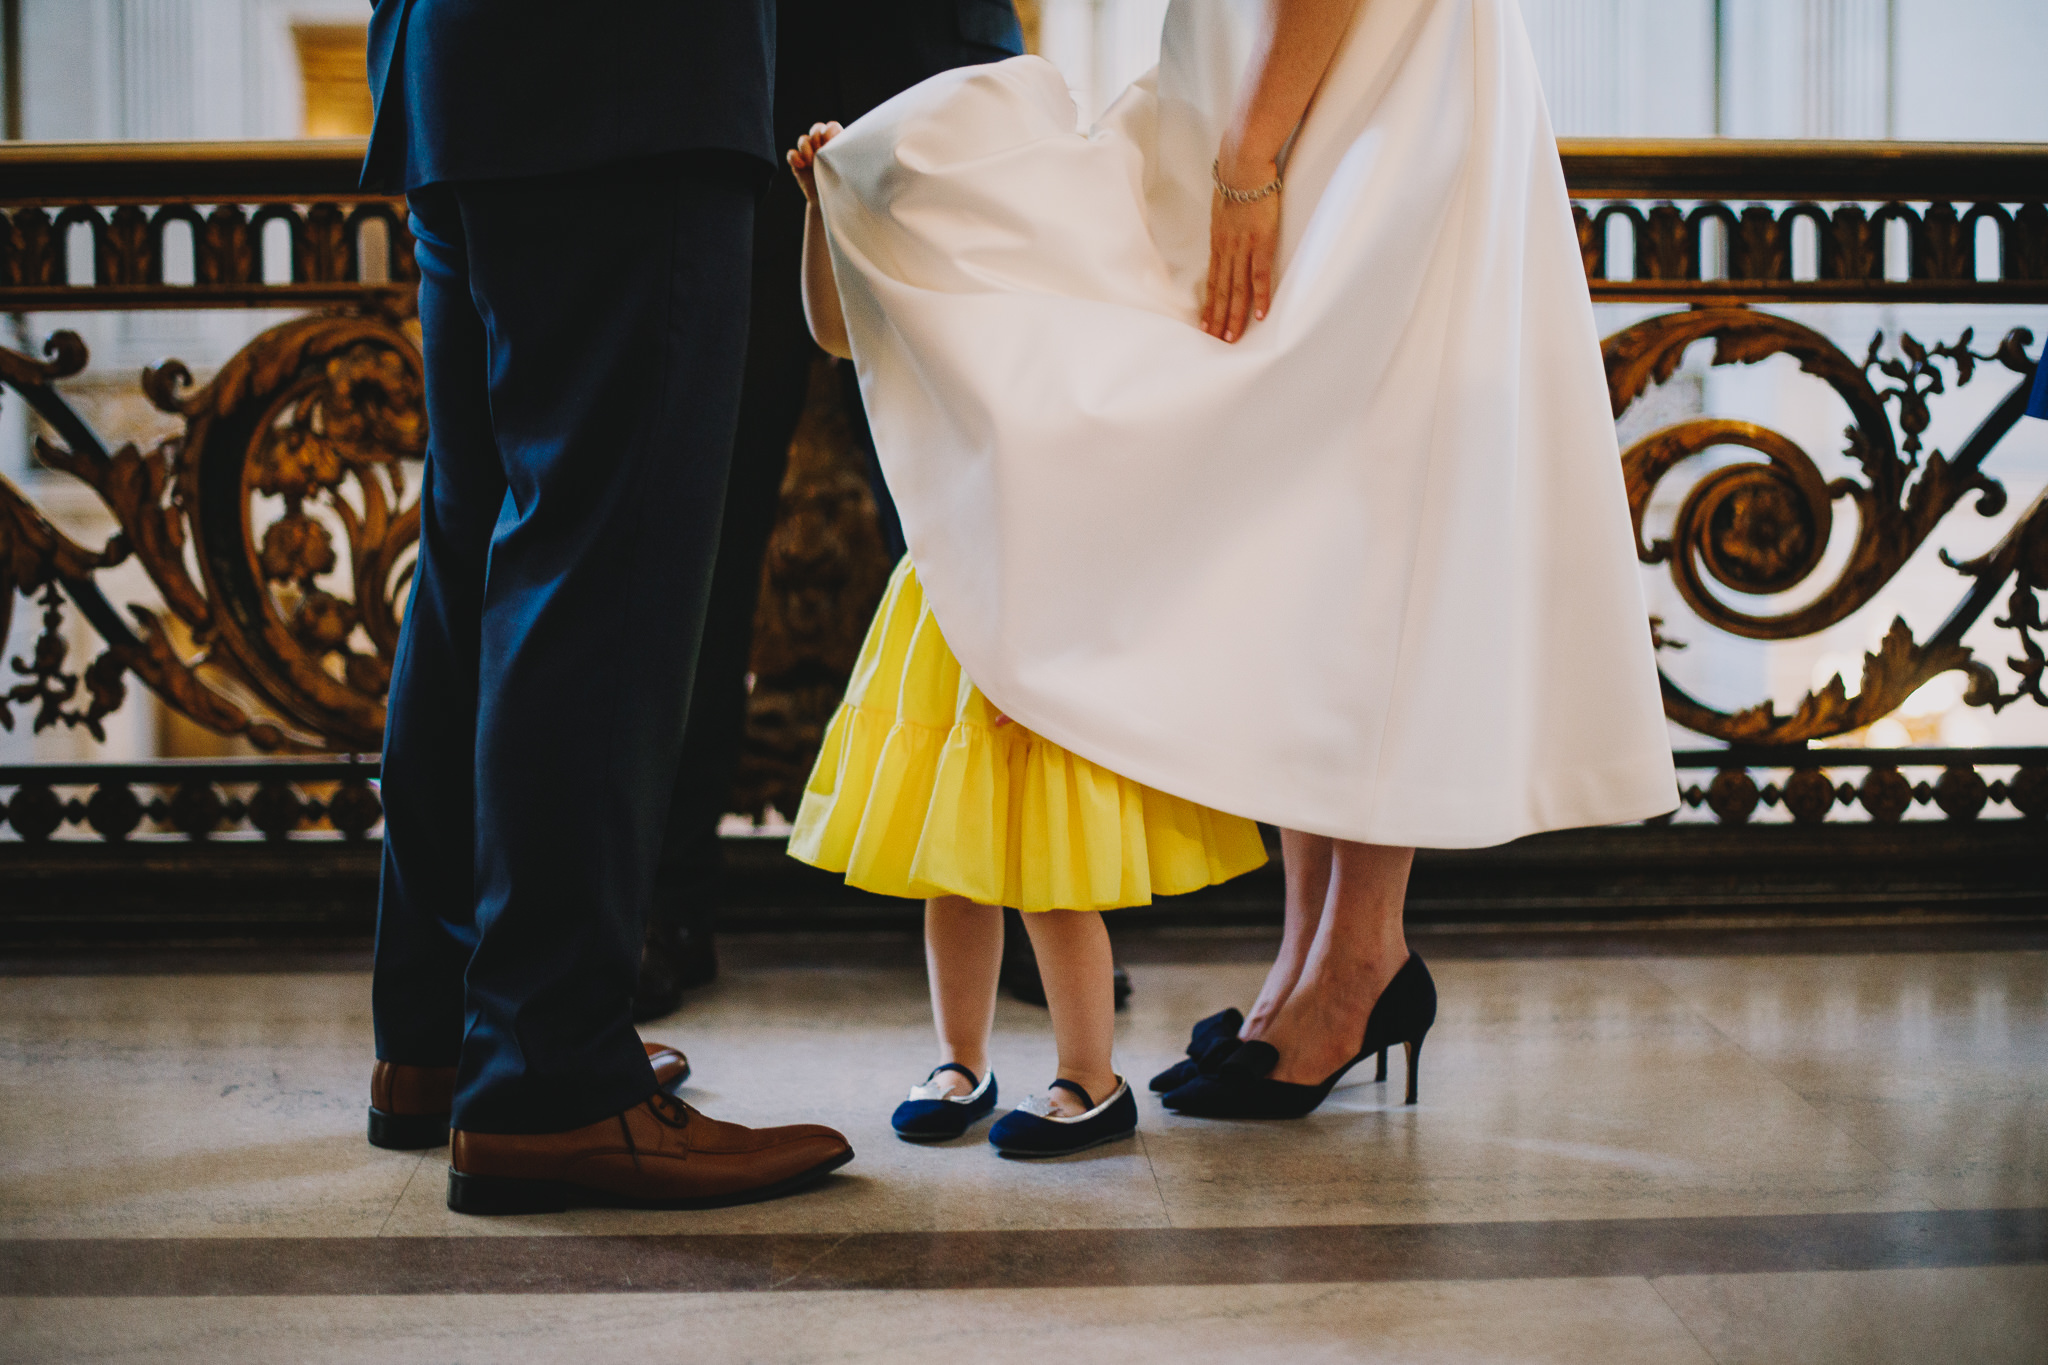 Archer Inspired Photography SF City Hall Elopement Wedding Lifestyle Documentary Affordable Photographer-82.jpg